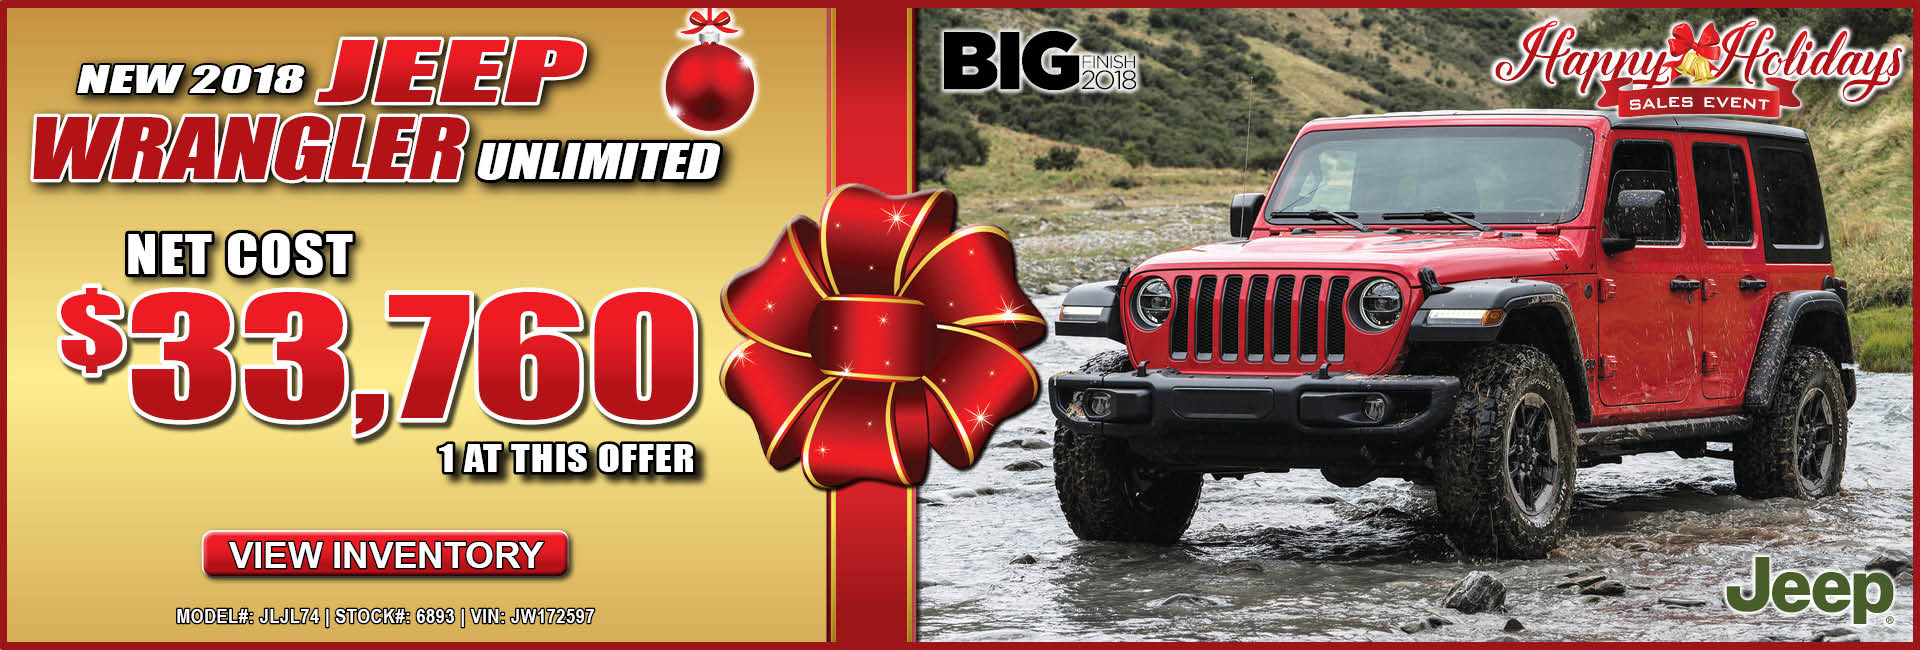 Jeep Wrangler Unlimited $33,760